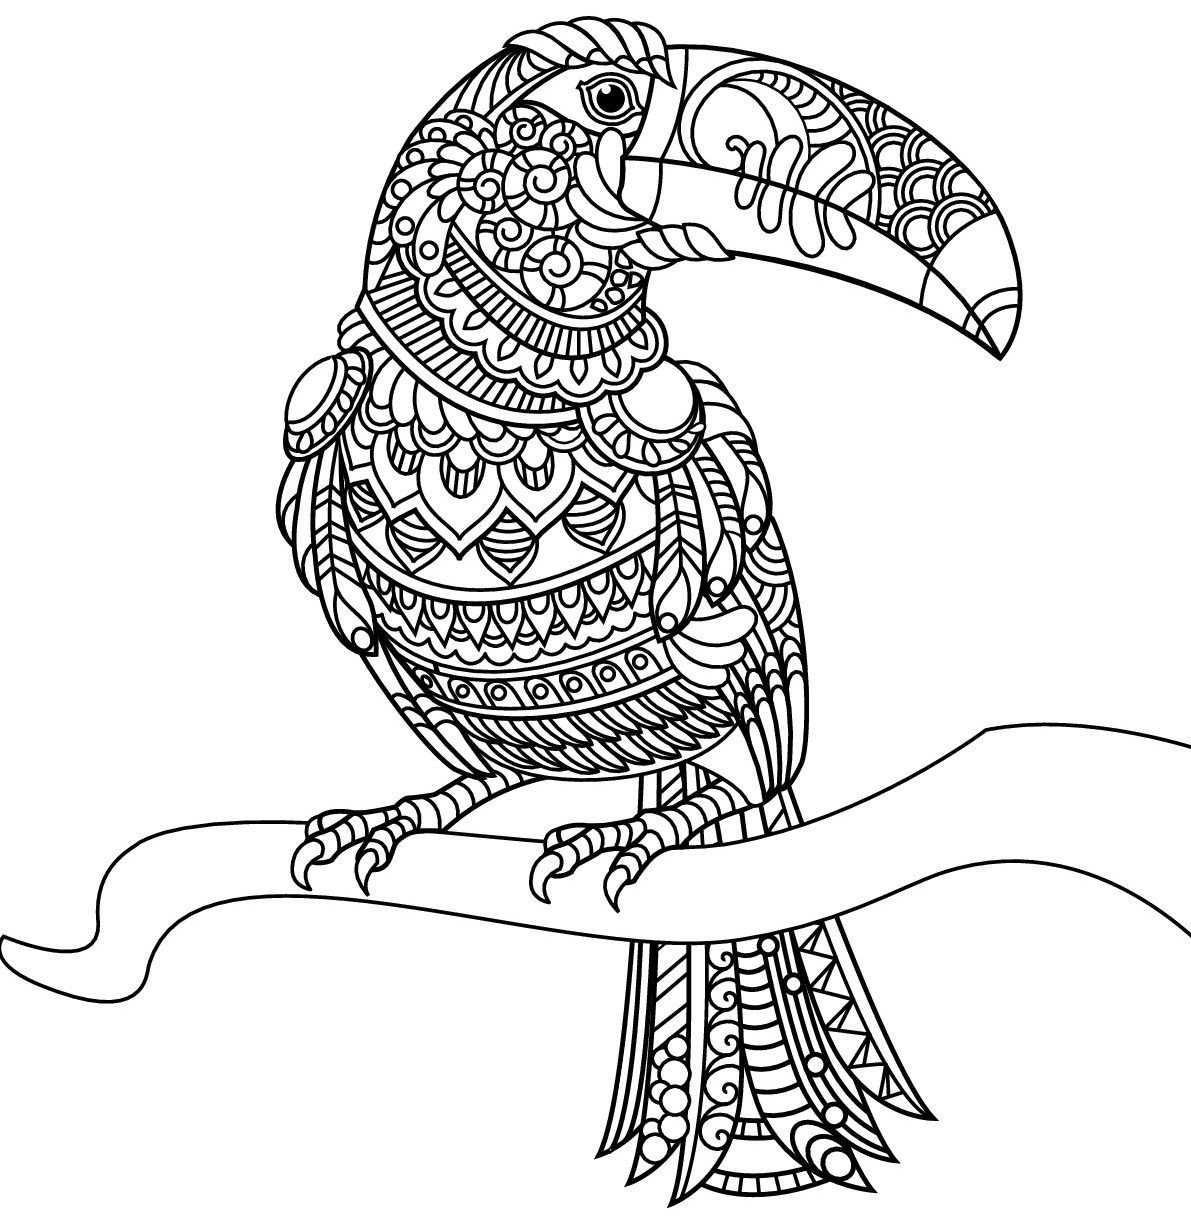 1191x1224 Toucan Coloring Pages To Print Page For Preschoolers Sam Free